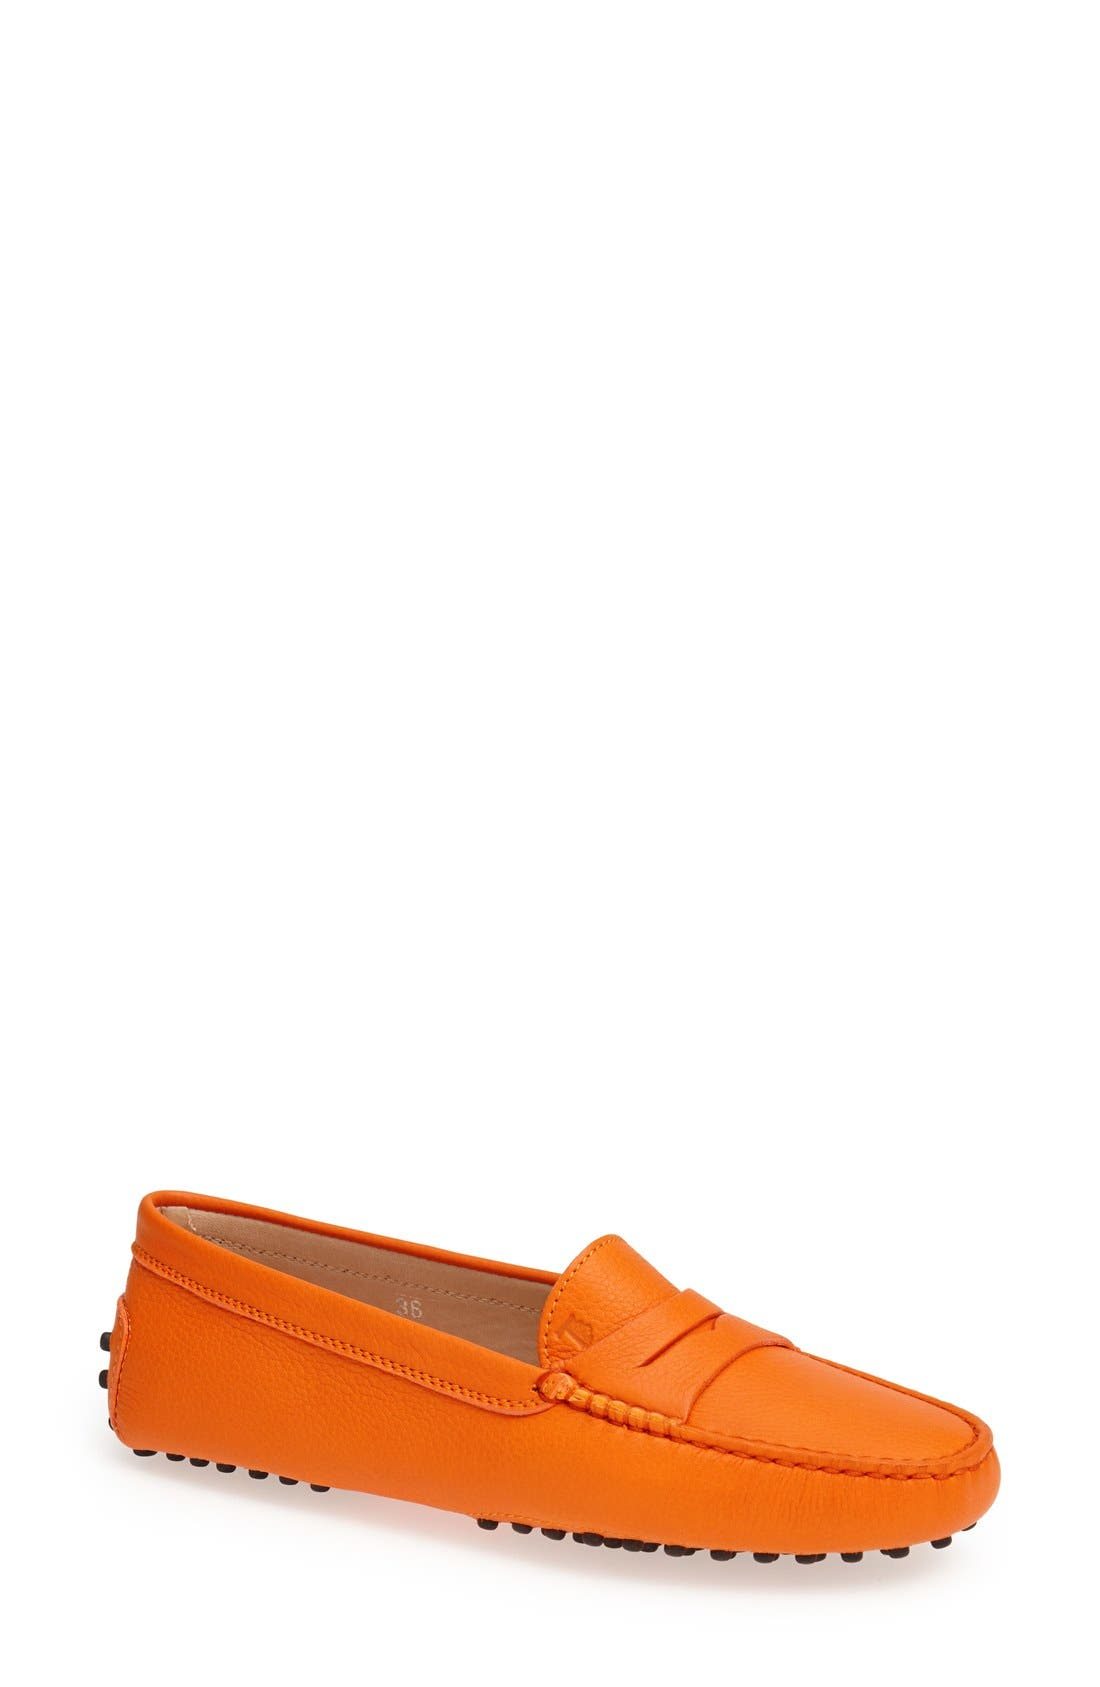 Main Image - Tod's 'Gommini' Driving Moccasin (Women)